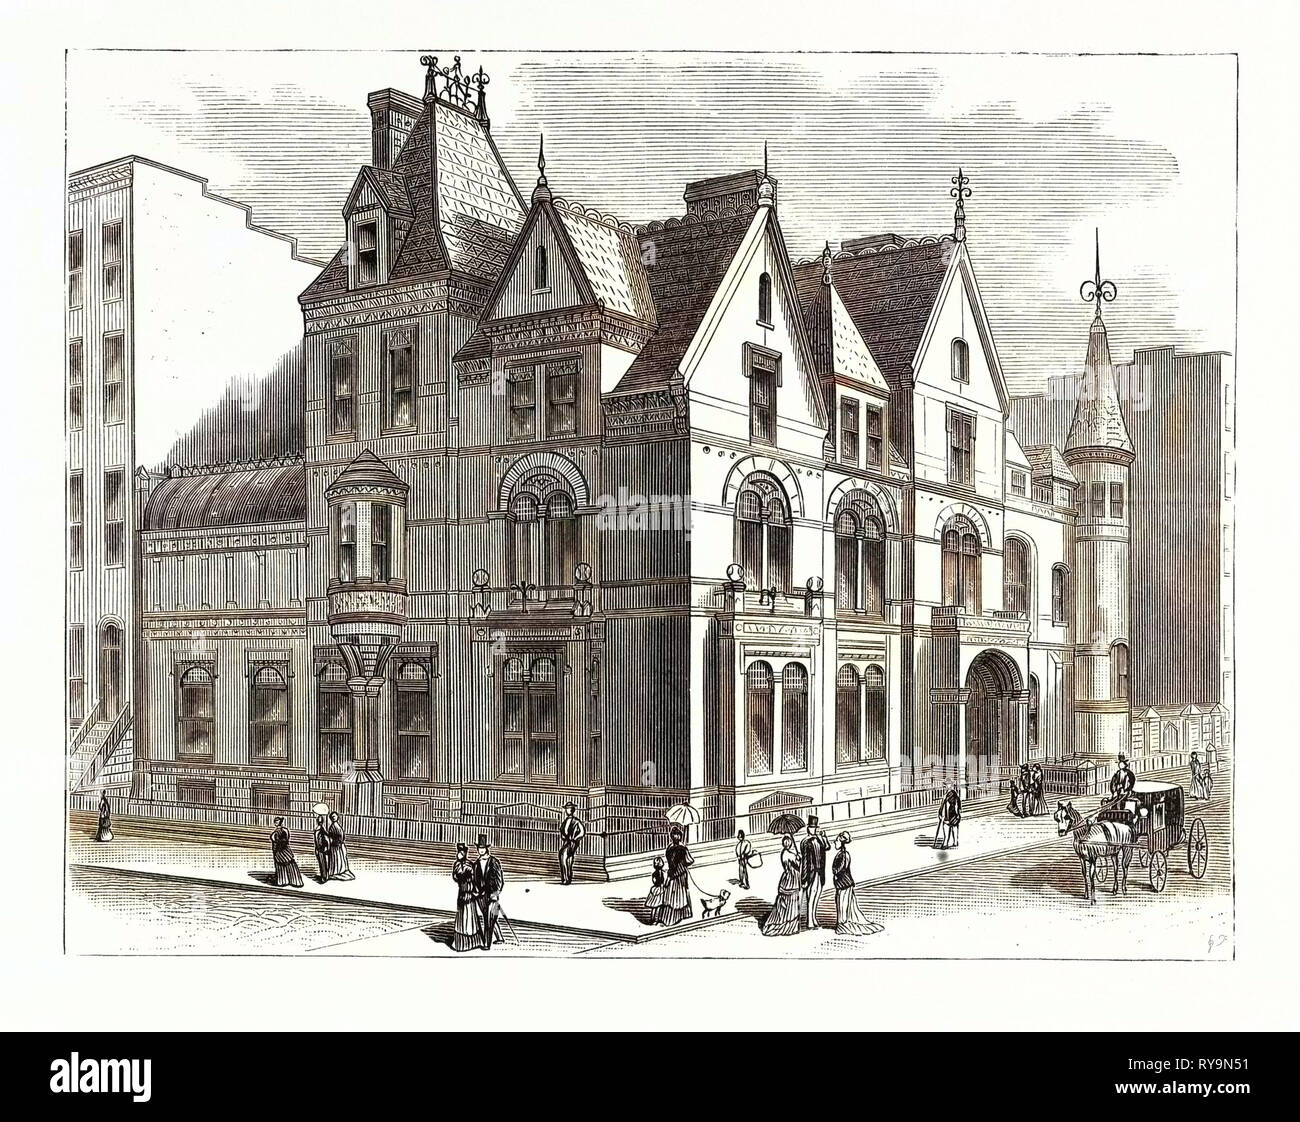 Architectural Progress of New York: Residence of Frederick W. Stevens, on Fifth Avenue and Fifty-Seventh Street. U.S., Engraving 1880 1881 - Stock Image